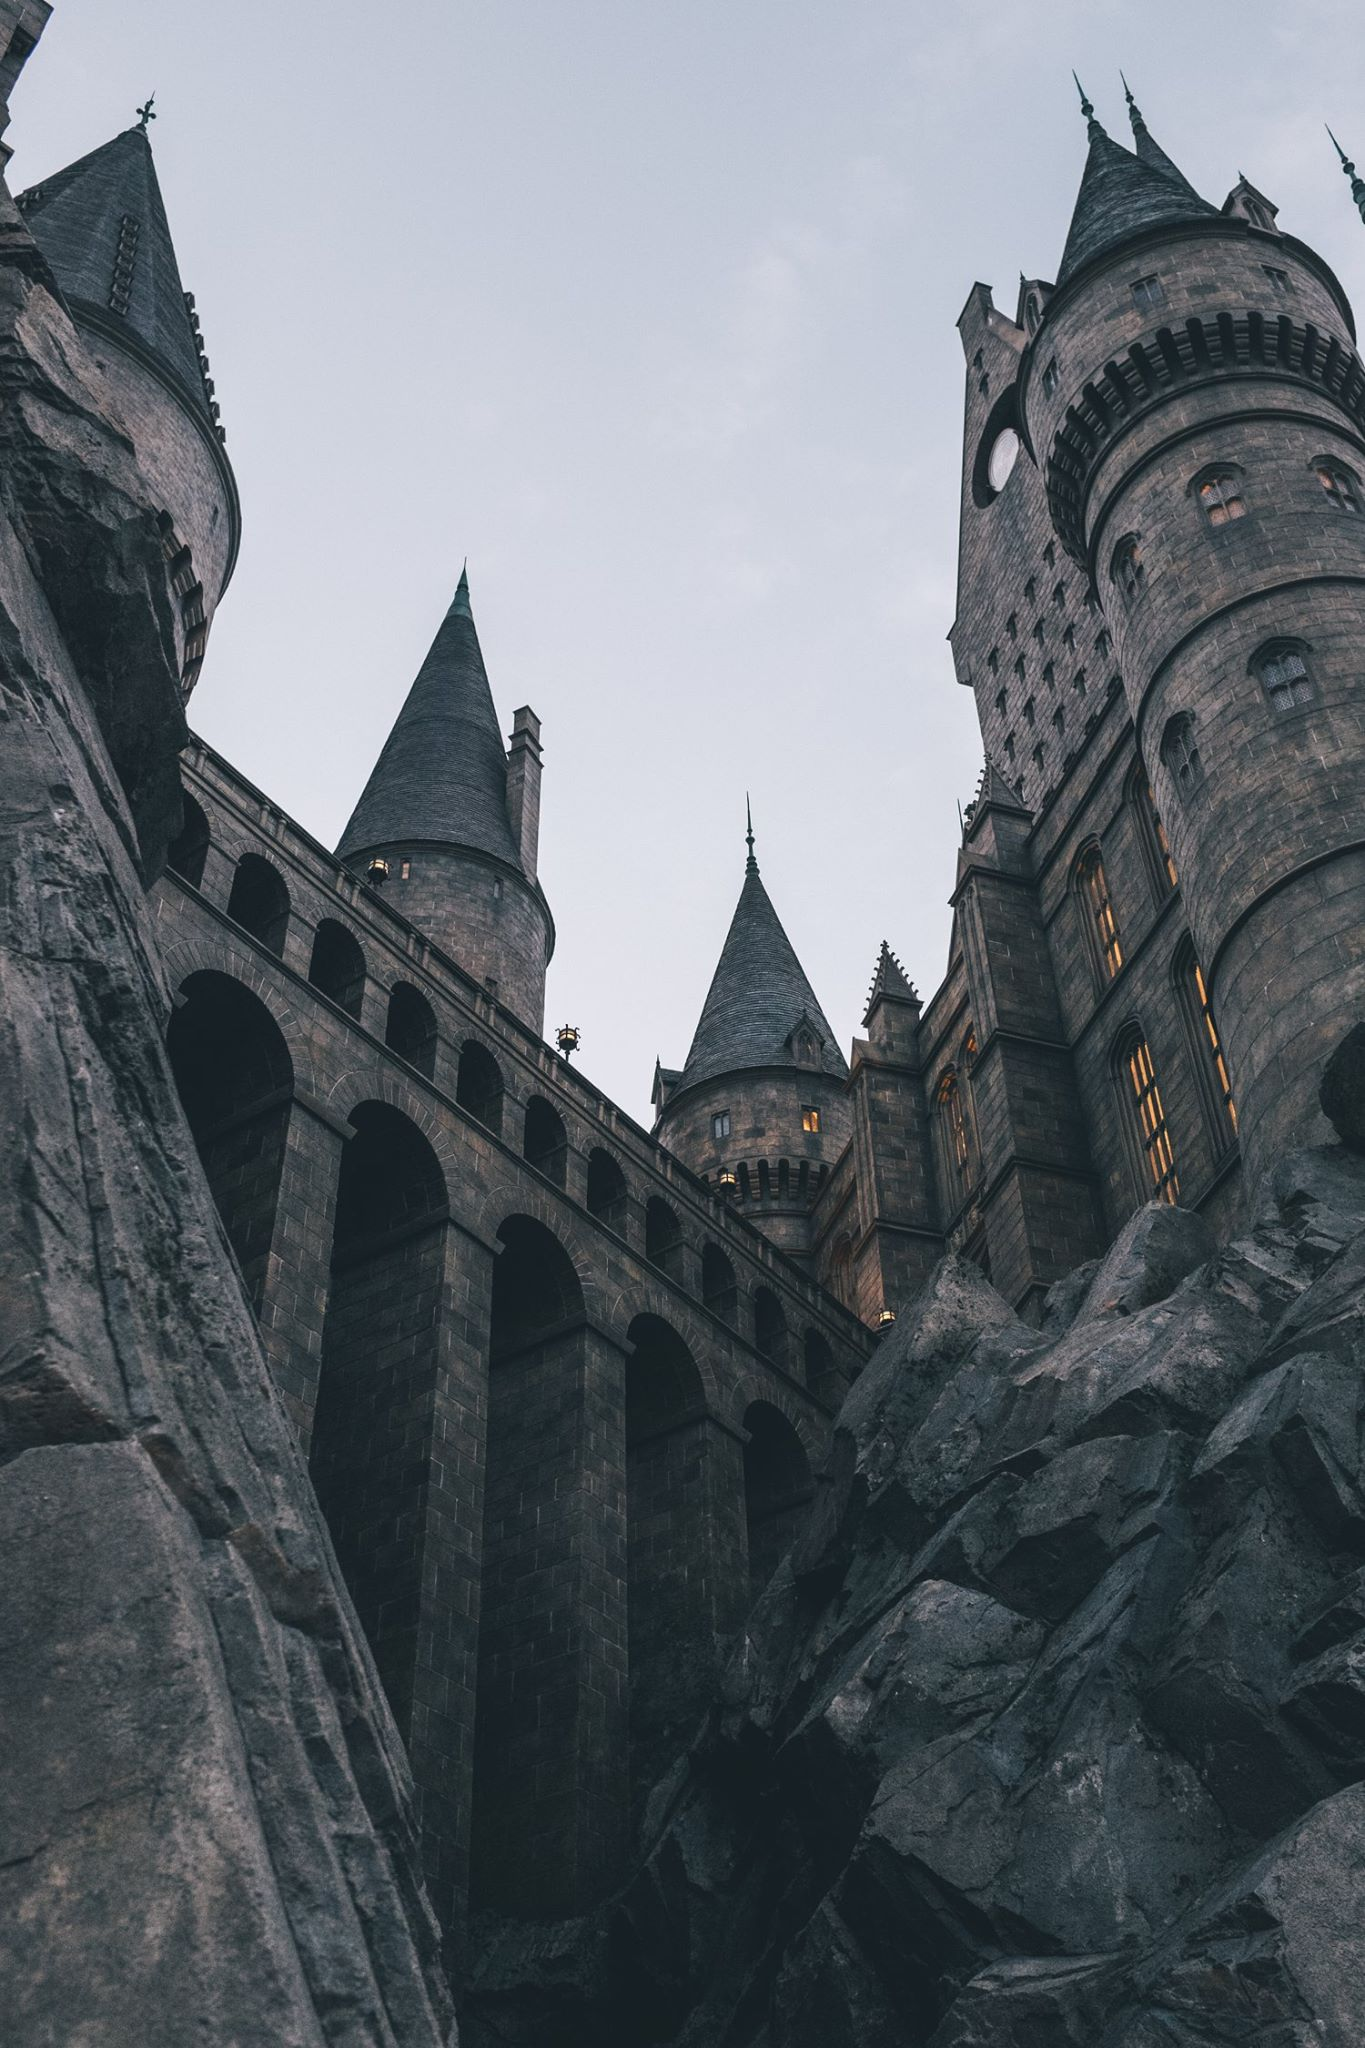 wizarding world of harry potter_maren-hald-bjorgum-39